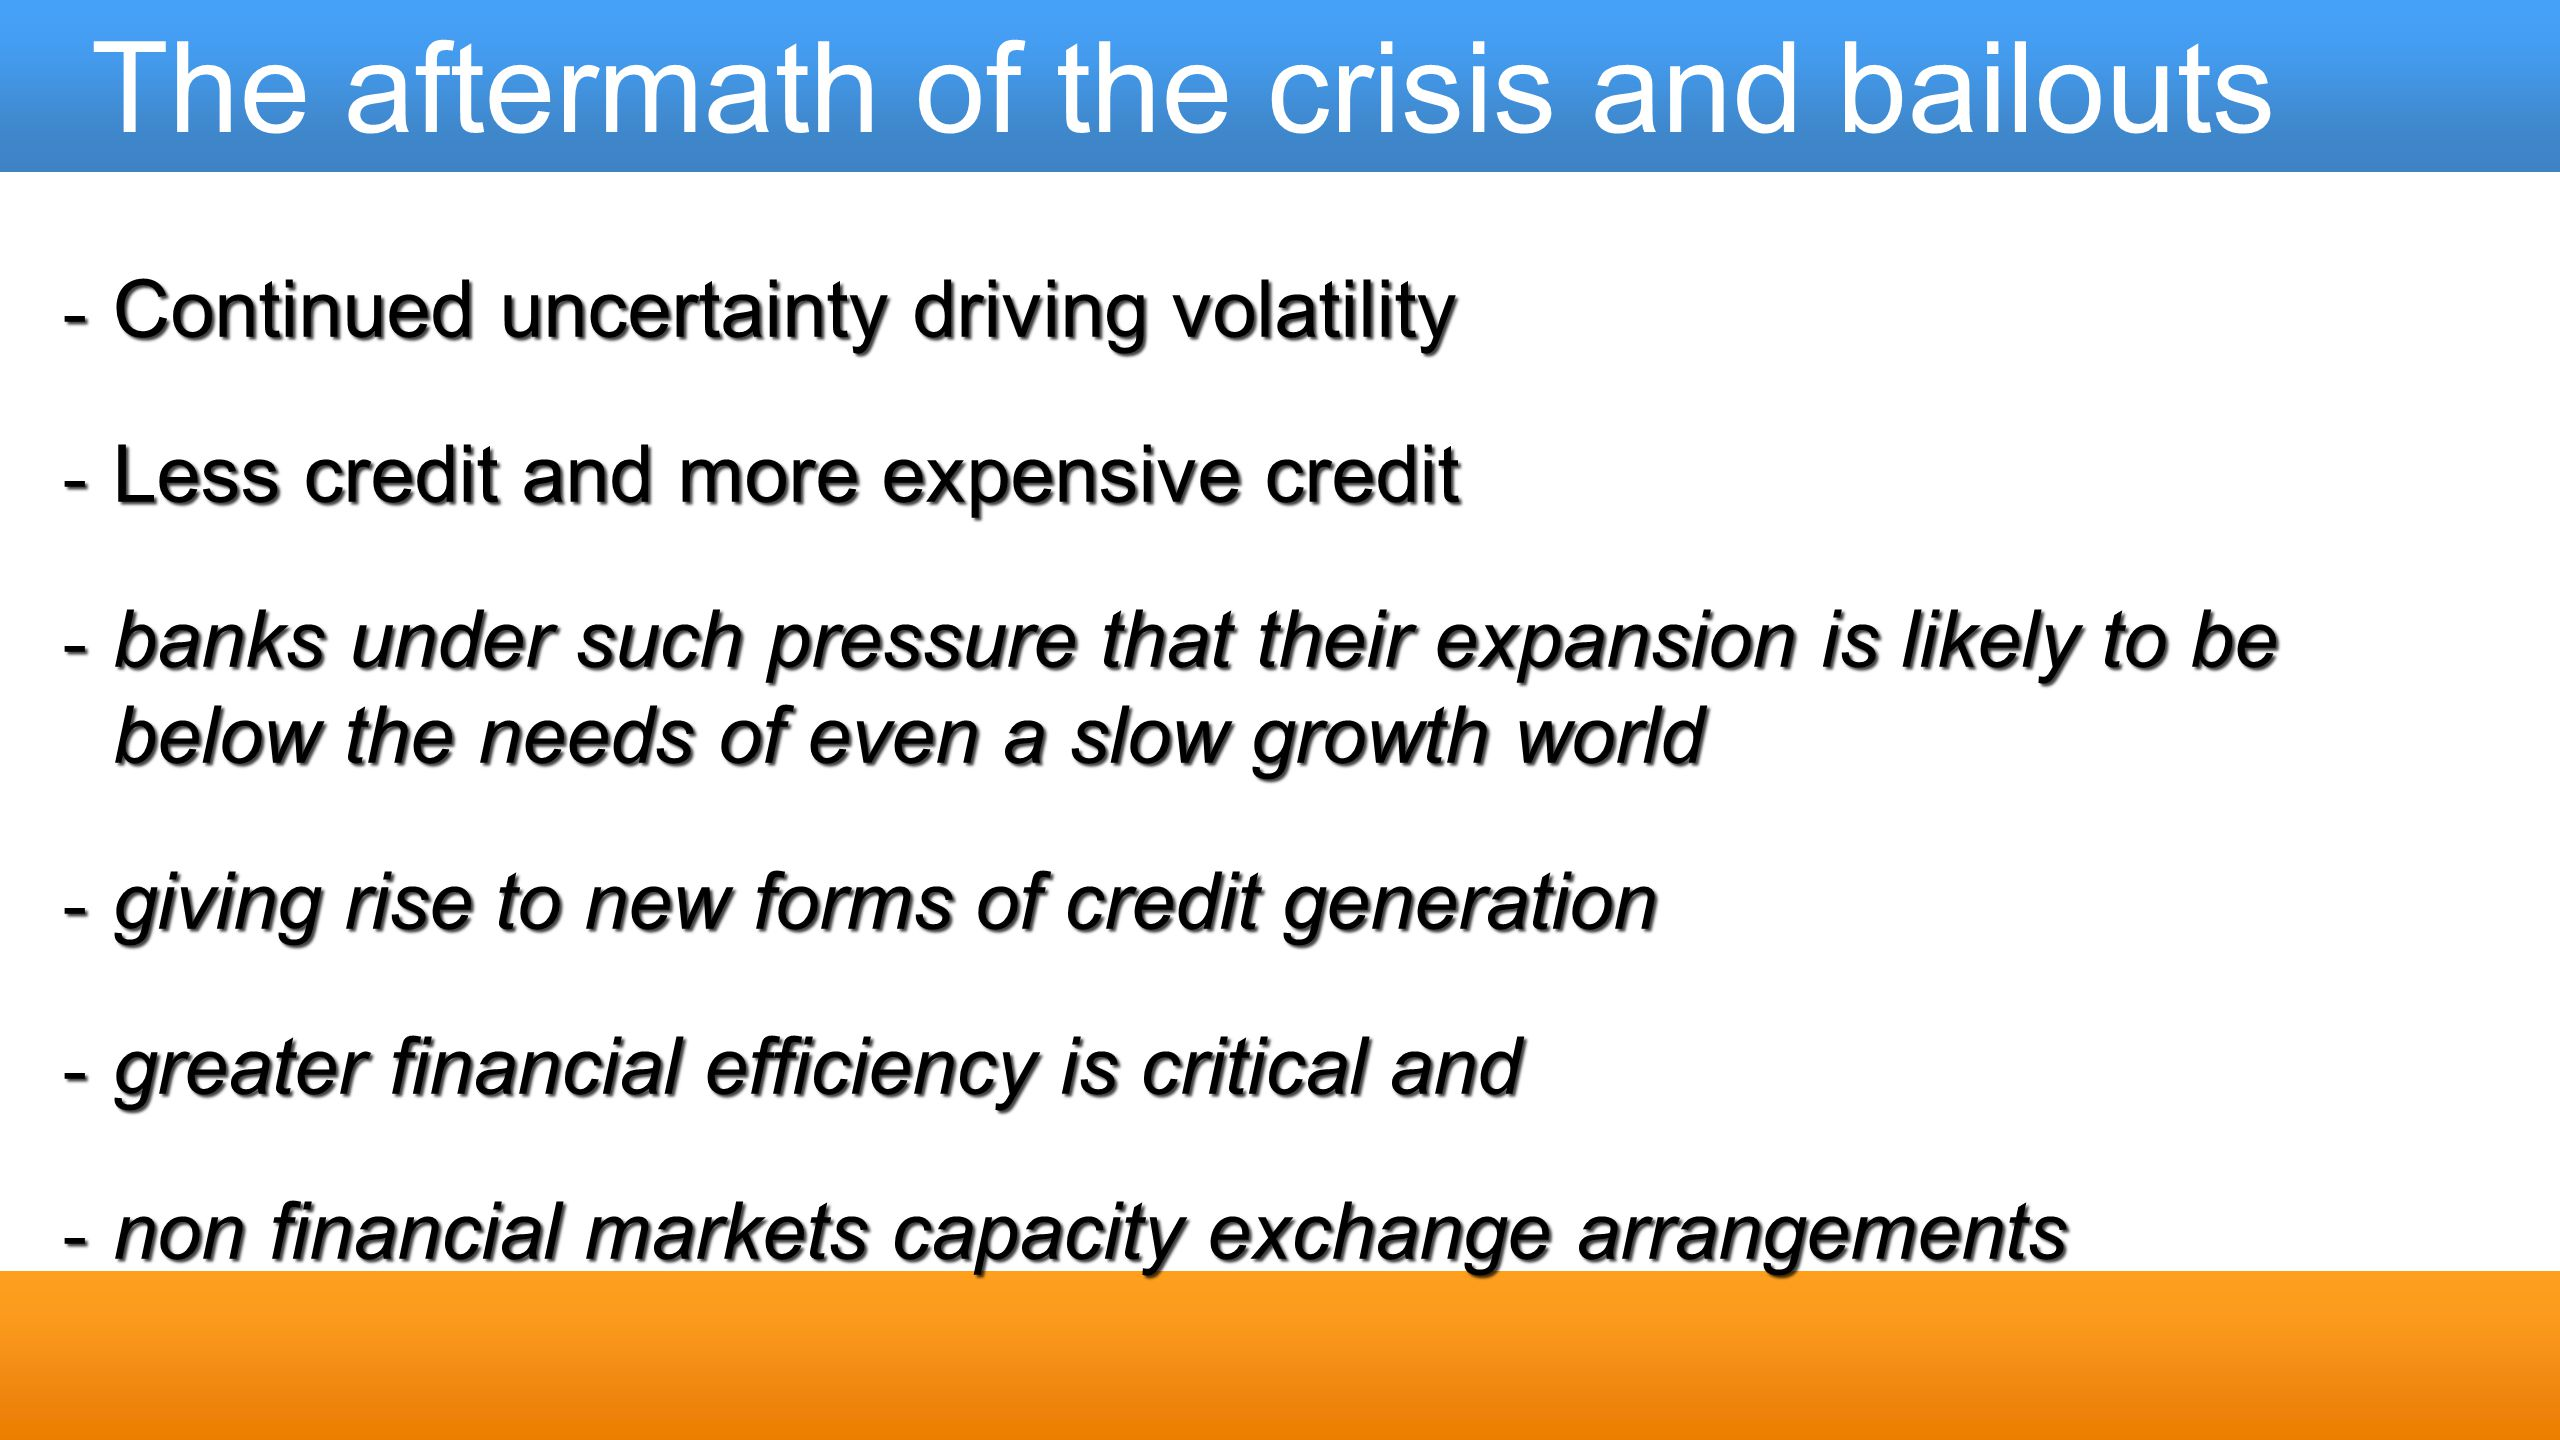 The aftermath of the crisis and bailouts - Continued uncertainty driving volatility - Less credit and more expensive credit - banks under such pressur